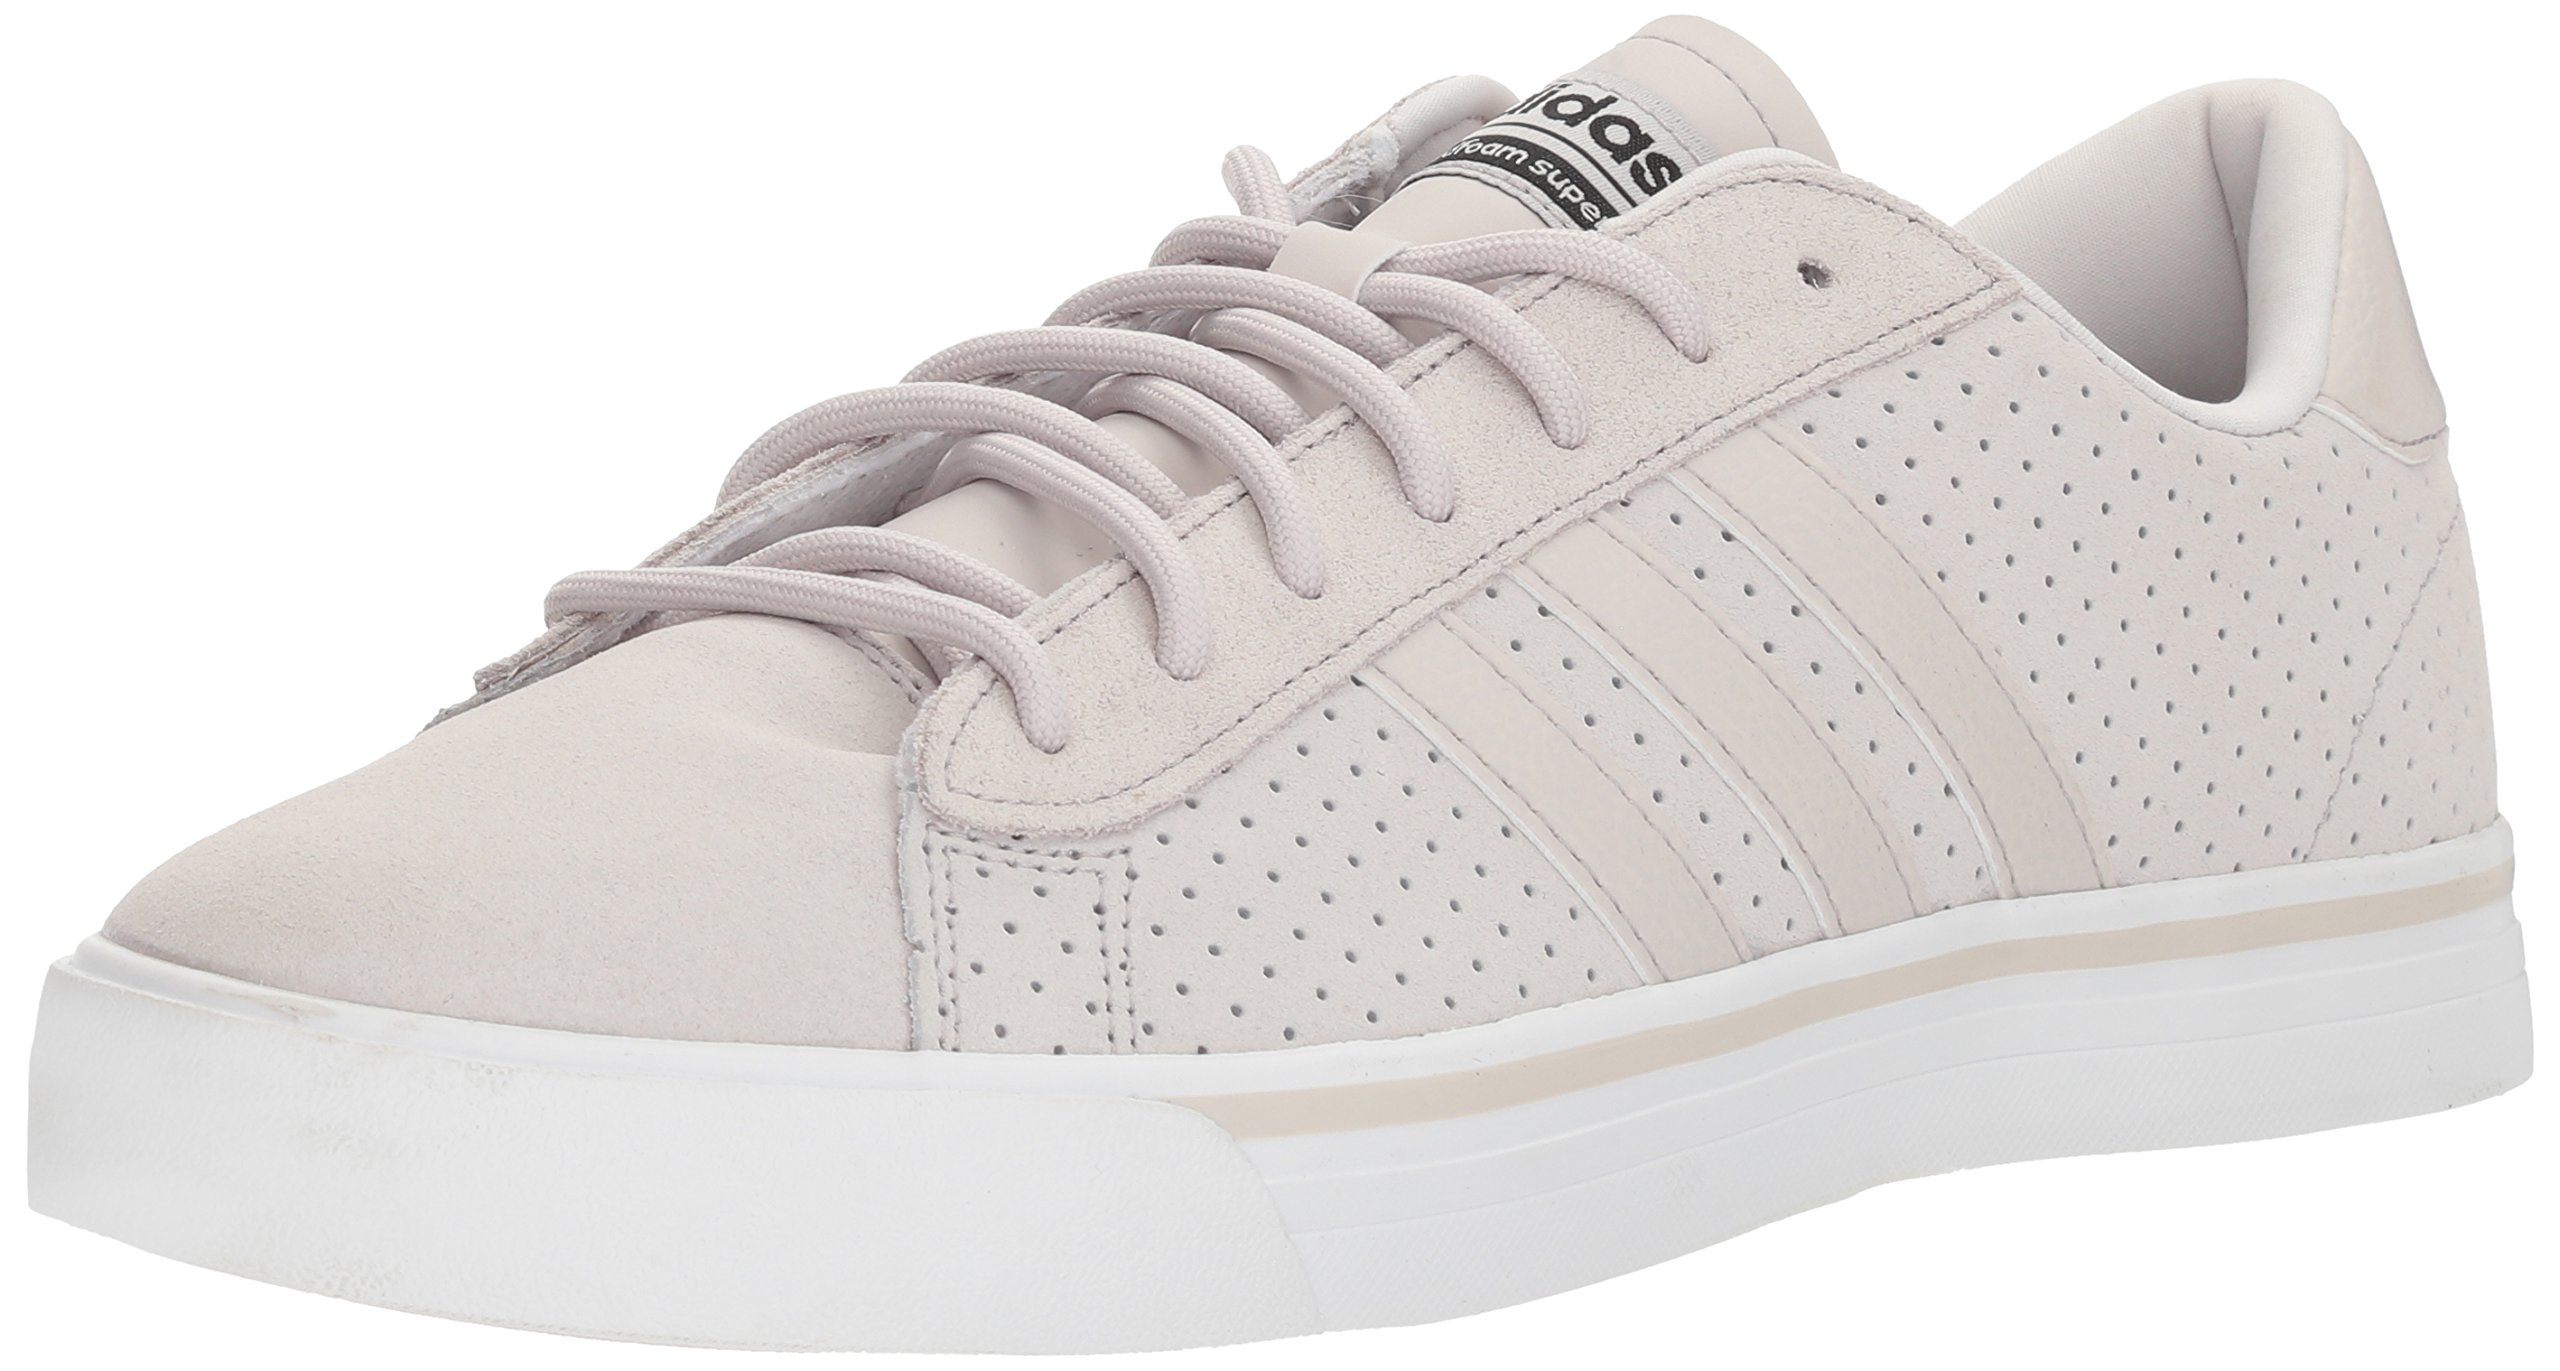 detailed look dfd43 36be3 Galleon - Adidas Neo Mens CF Super Daily Sneaker,Chalk PearlChalk  Pearlcore Black,14 M US